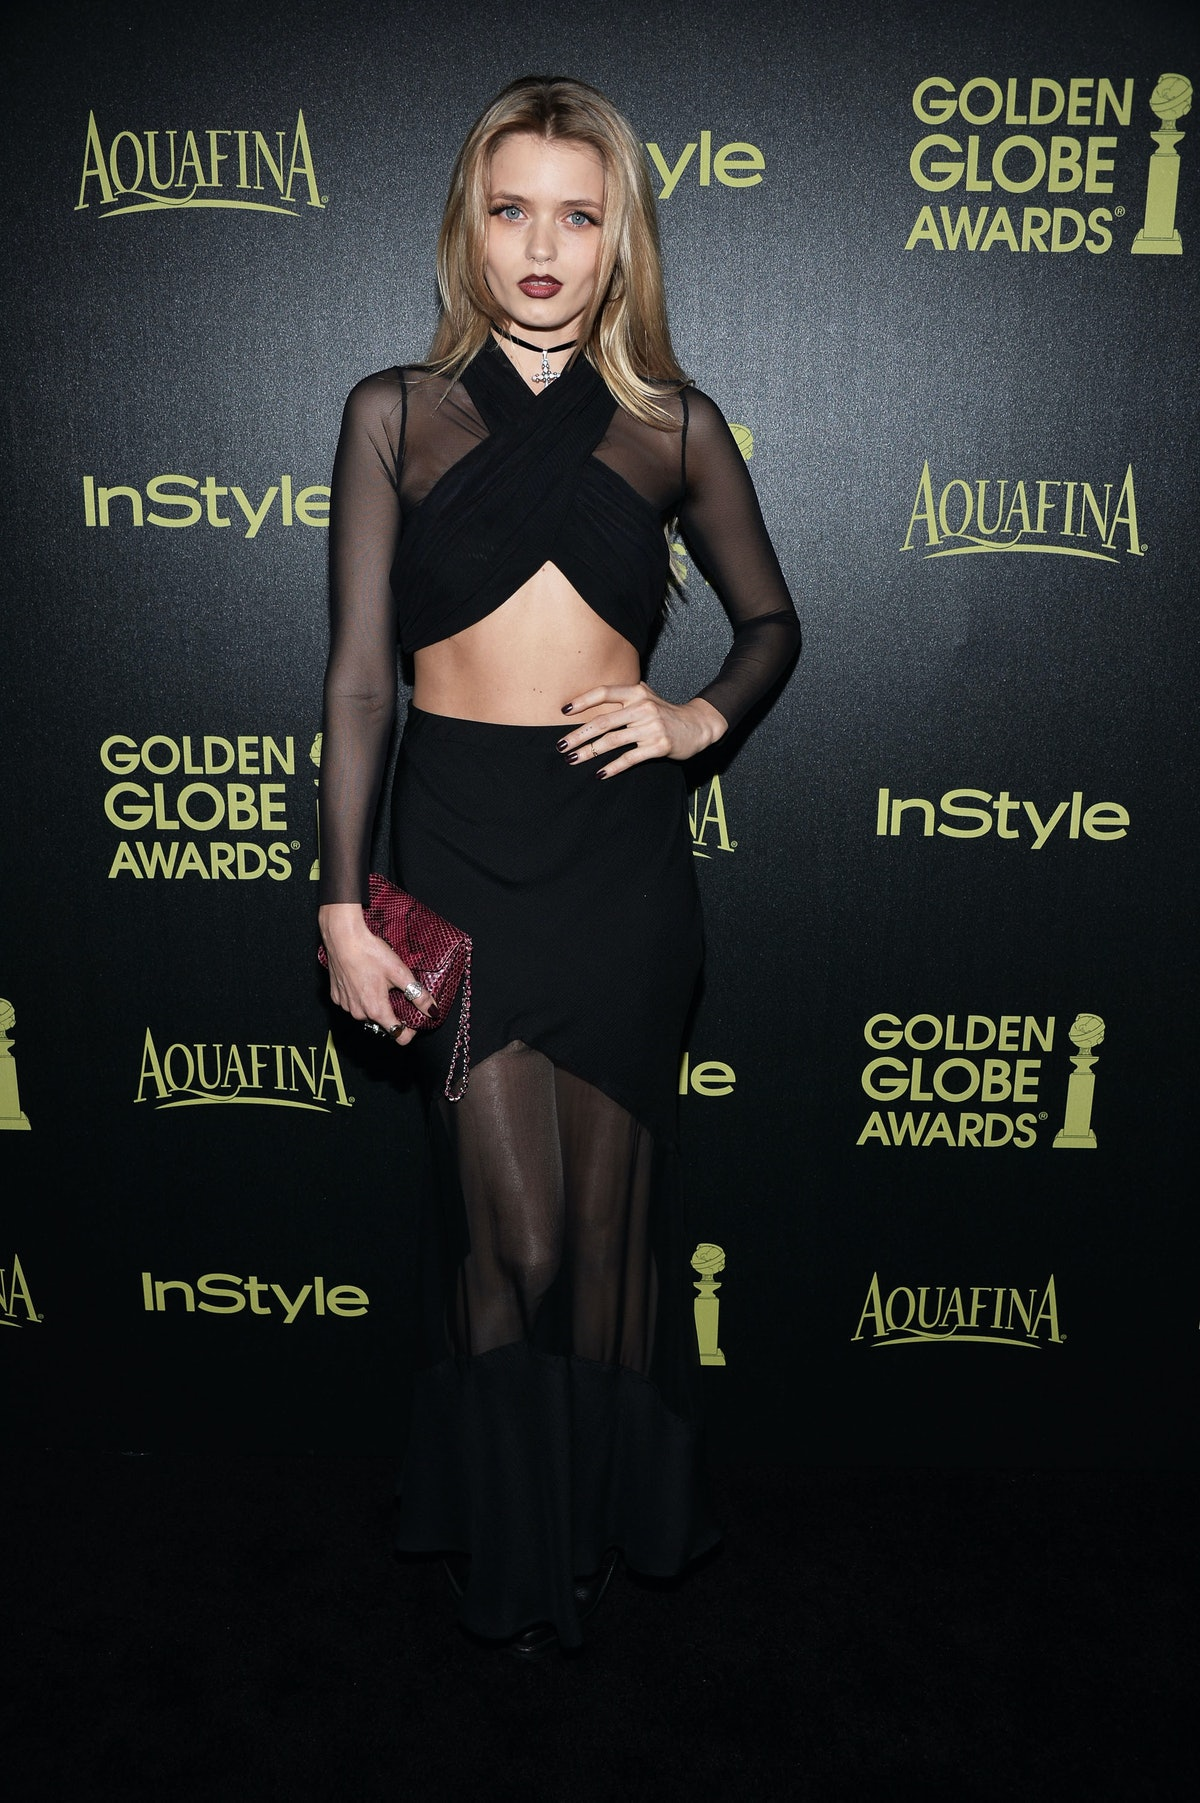 The Hollywood Foreign Press Association And InStyle Celebrate The 2015 Golden Globe Award Season